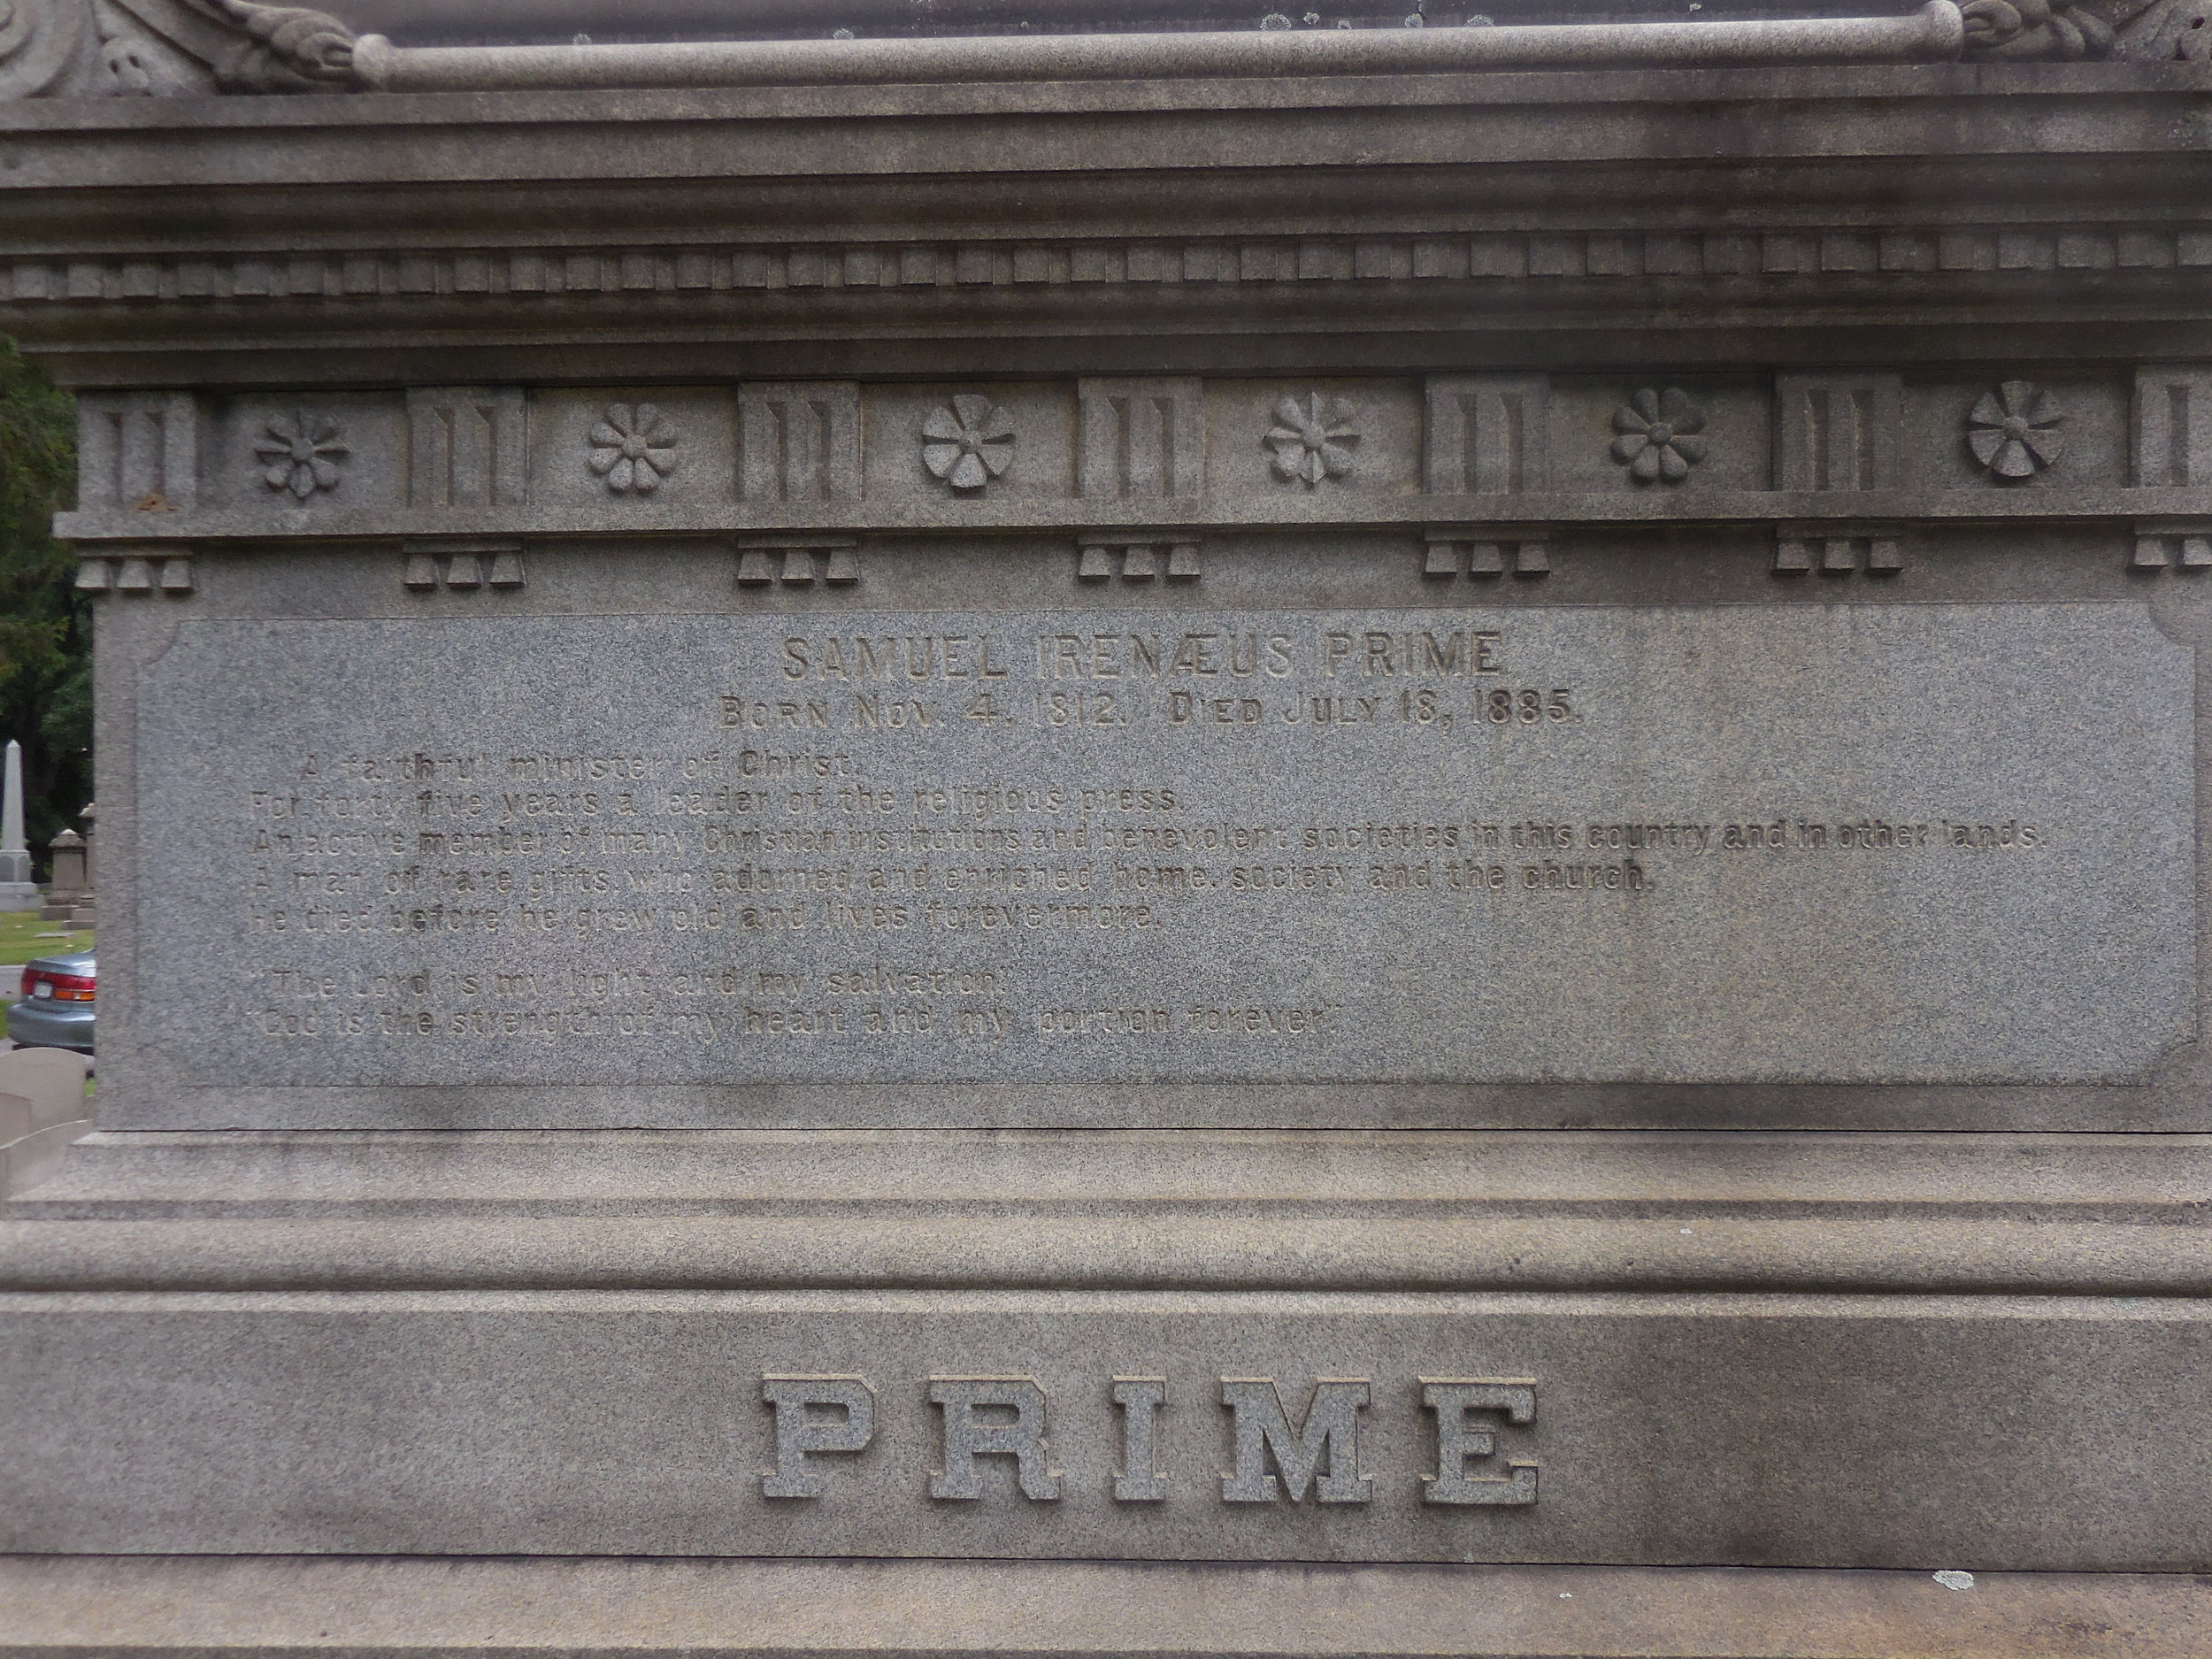 Samuel Irenaeus Prime was buried at Woodlawn Cemetery, Bronx, New York.